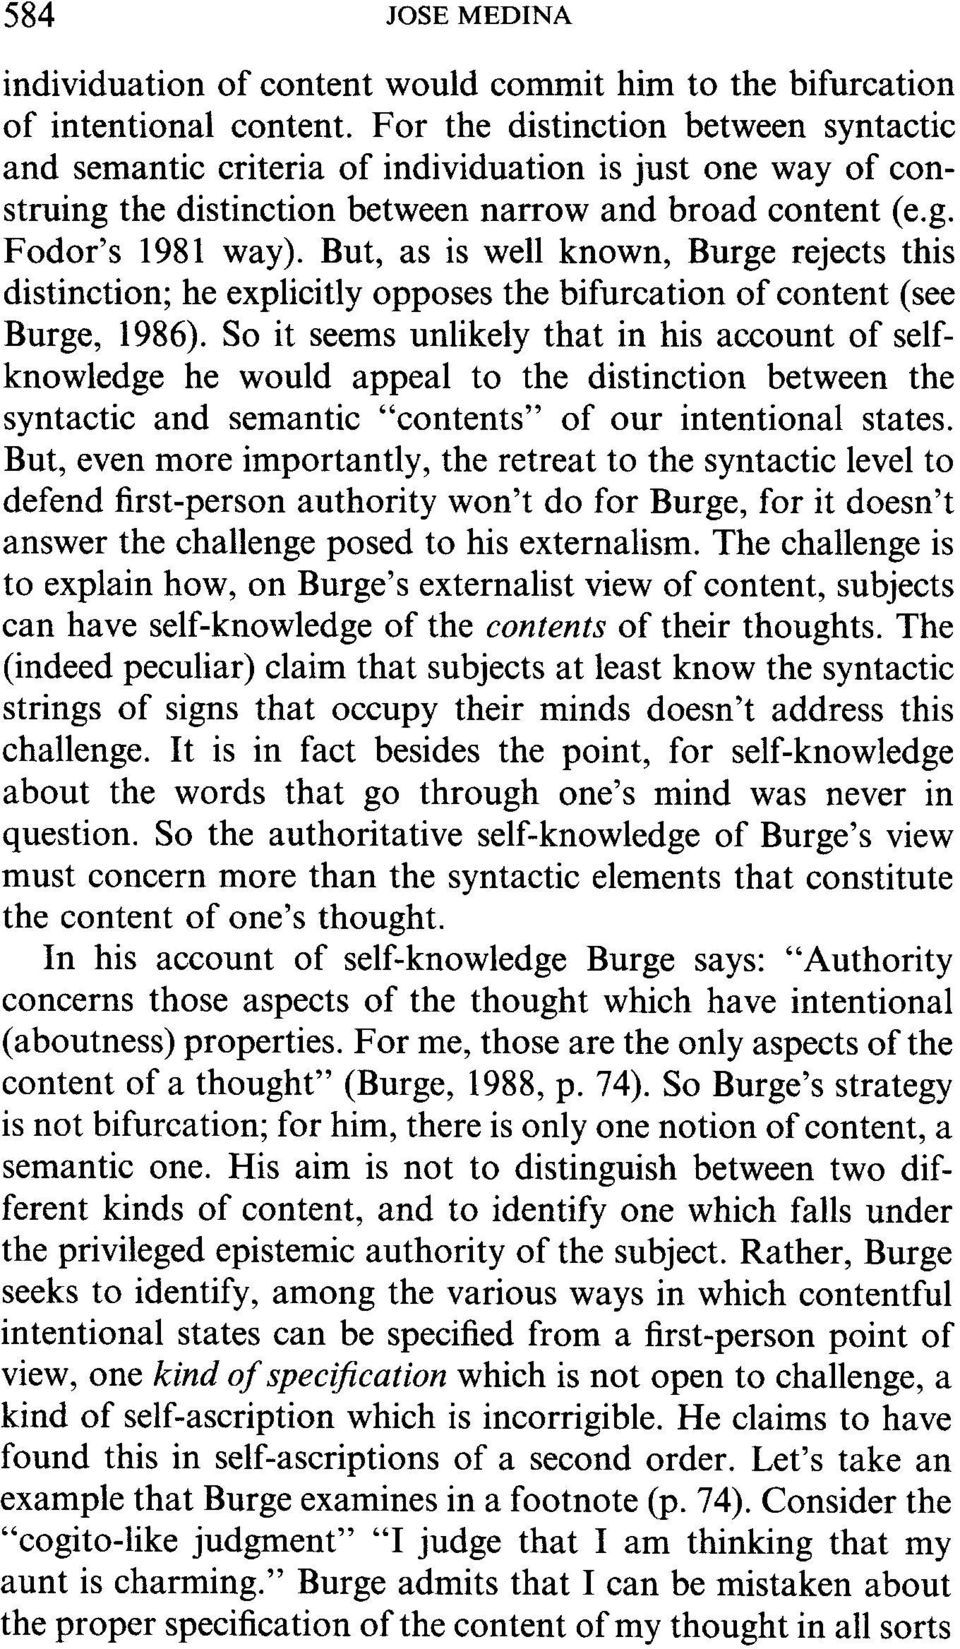 But, as is well known, Burge rejects this distinction; he explicitly opposes the bifurcation of content (see Burge, 1986).